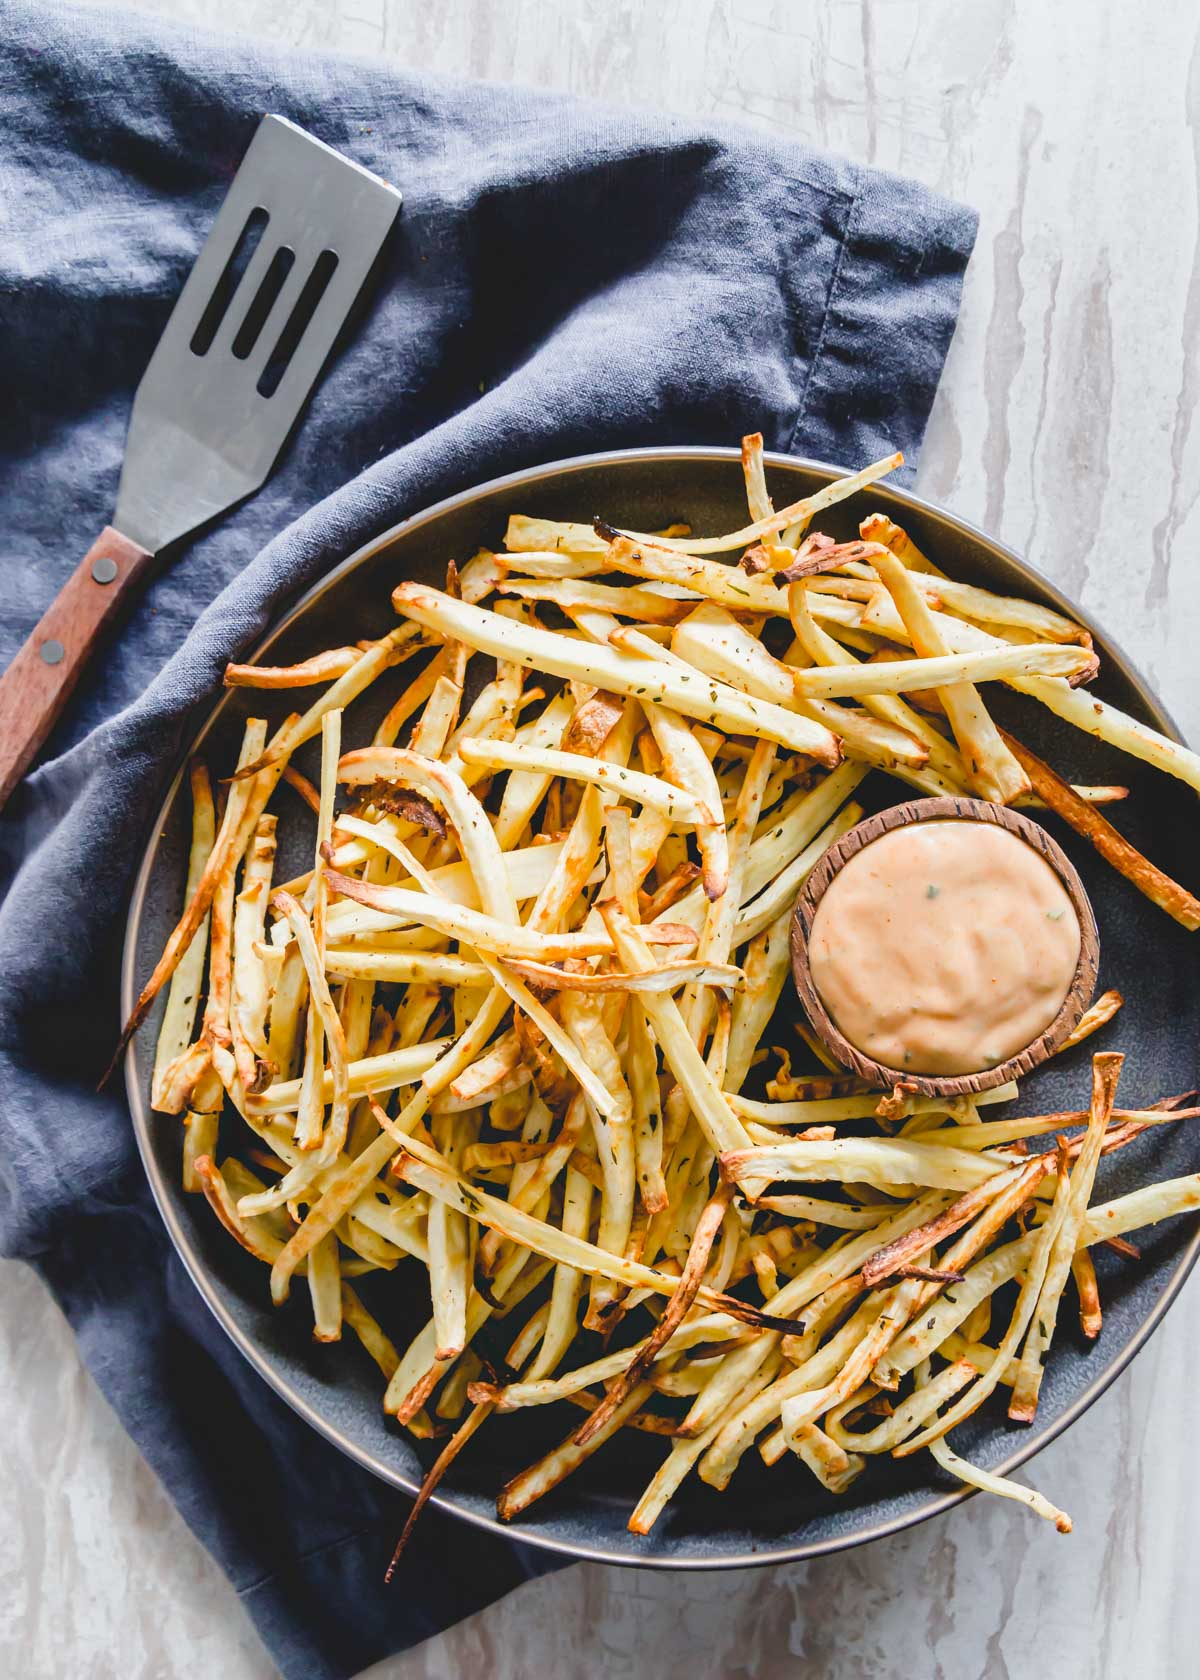 Rosemary garlic baked parsnip fries with a ketchup and mayonnaise dipping sauce on a serving plate.